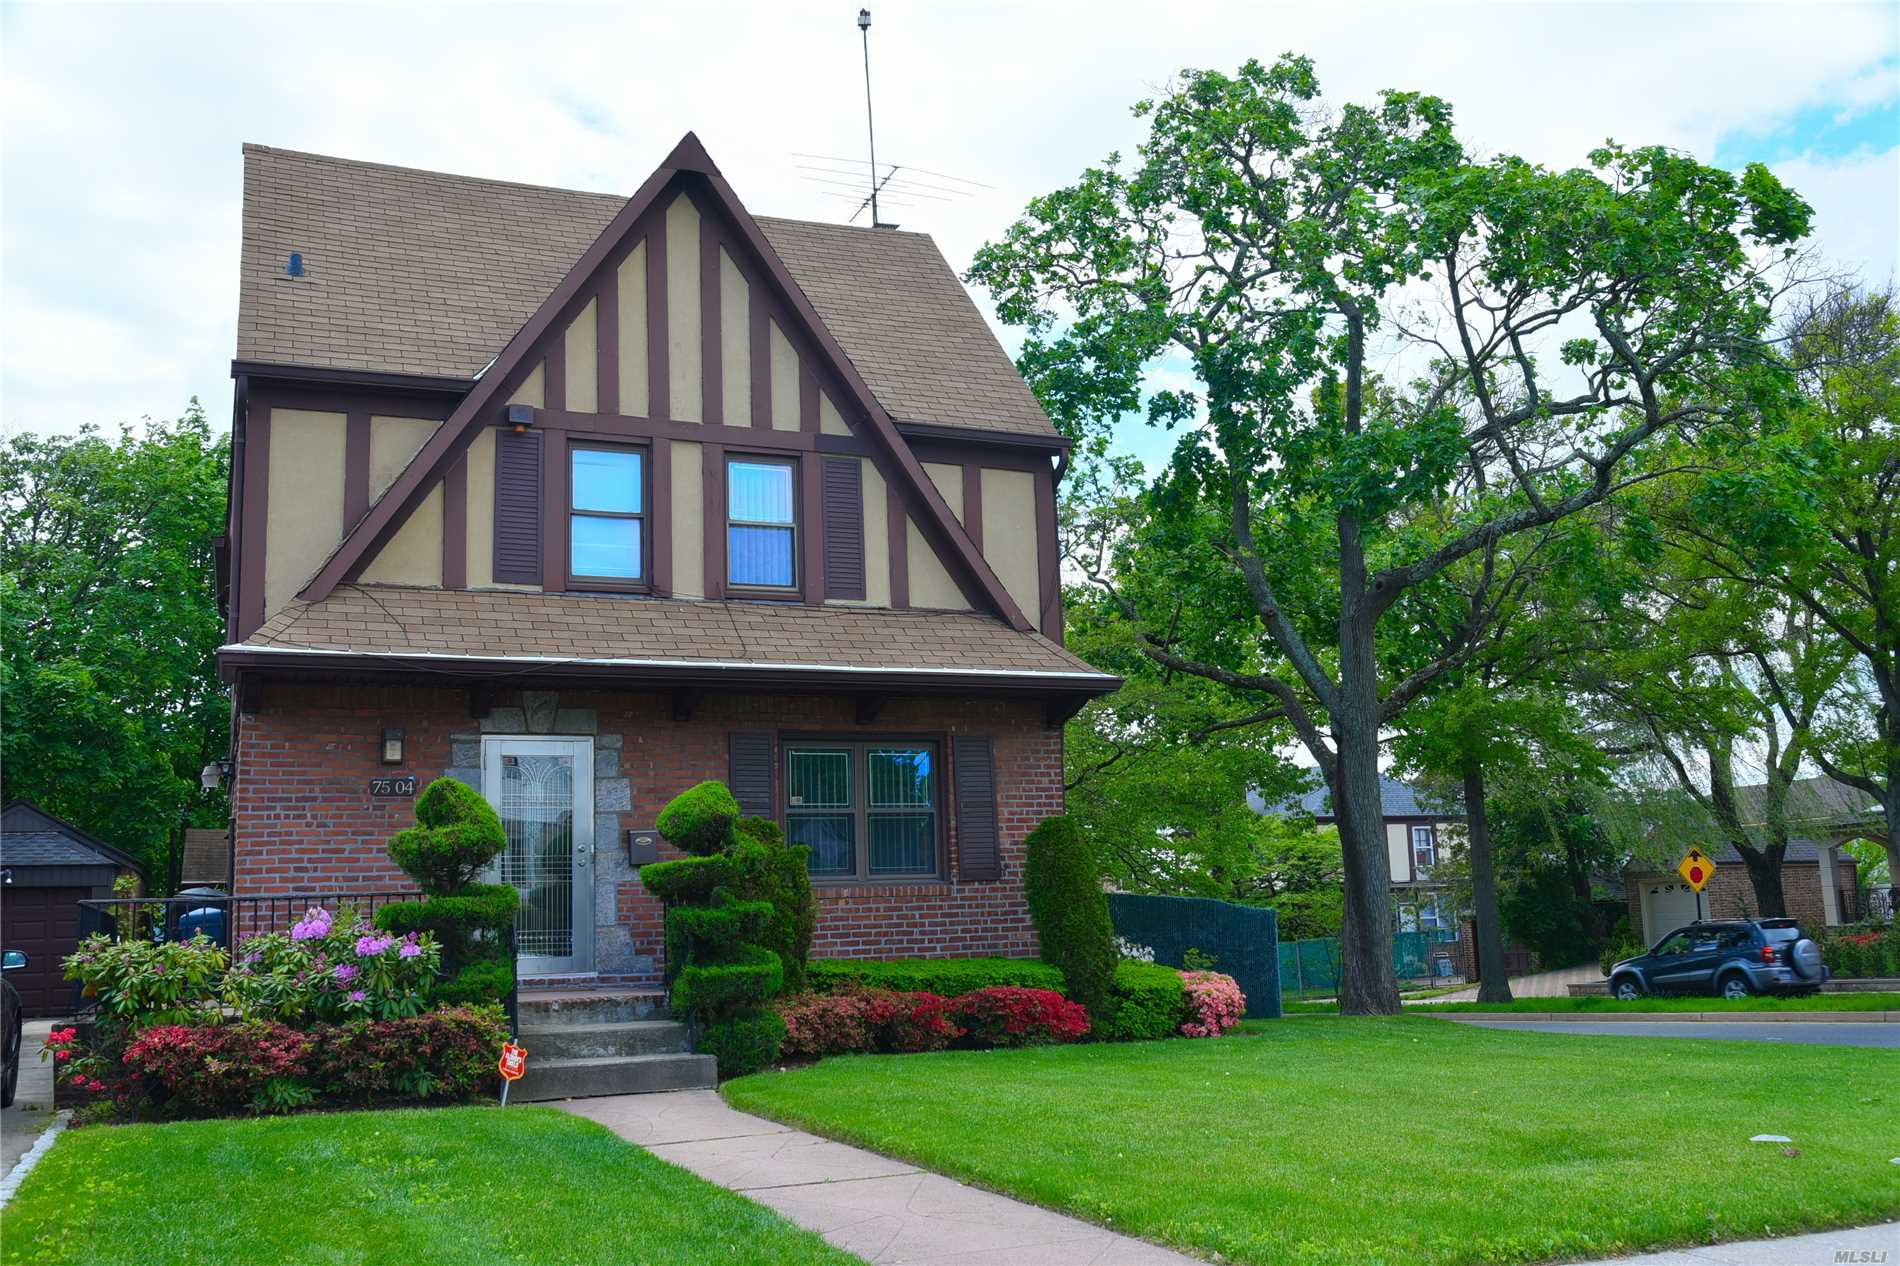 Location! Location! Location! This Brick corner colonial house right in the heart of Fresh Meadows, and situated only one block away from Union Turnpike and all shopping and transportation. House is in excellent move-in condition, very well maintained and have an updated heating system and hot water heater. Roof is also has been partially updated four years ago. Won't last!.. Call today for your private showing...